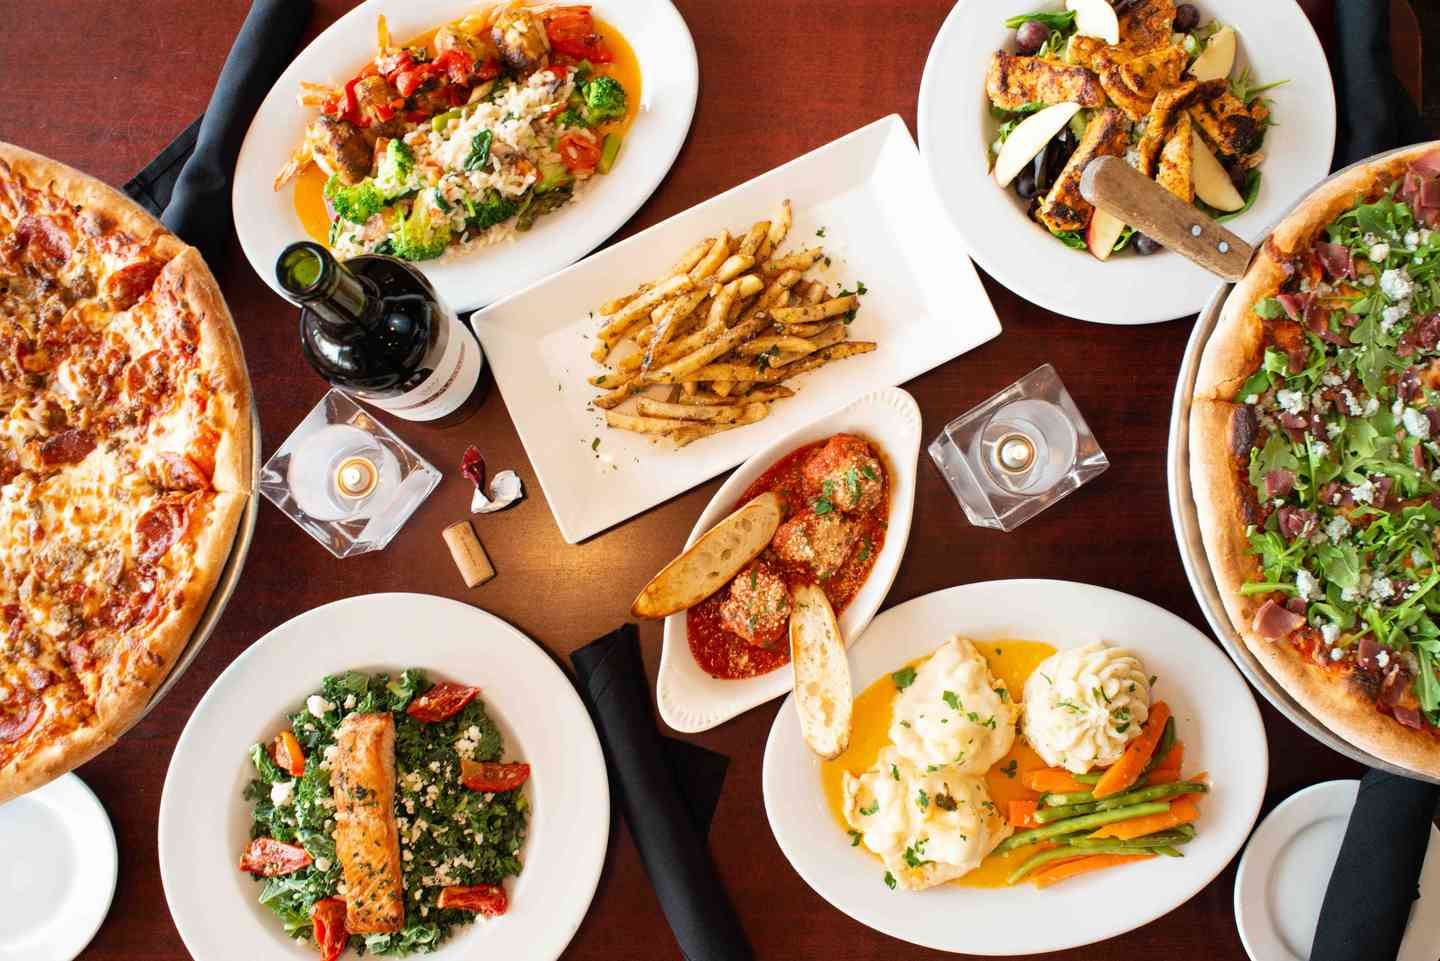 overhead shot of several plates of appetizers and pizza